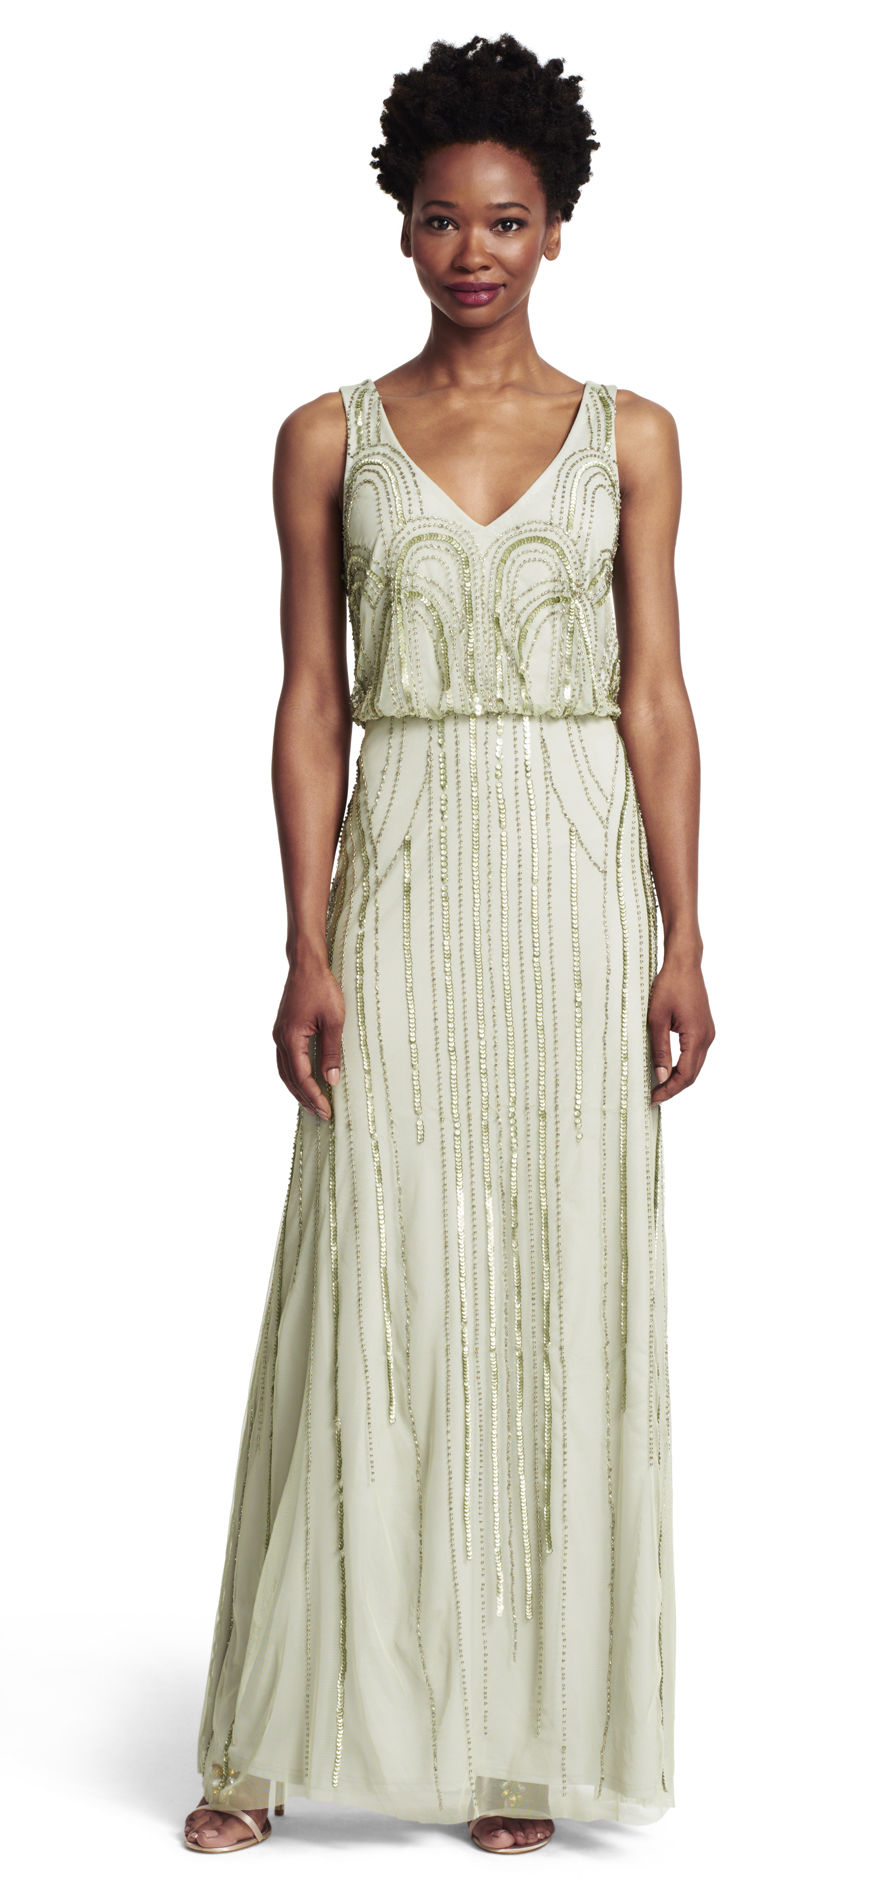 BridesmaidDress10.jpg